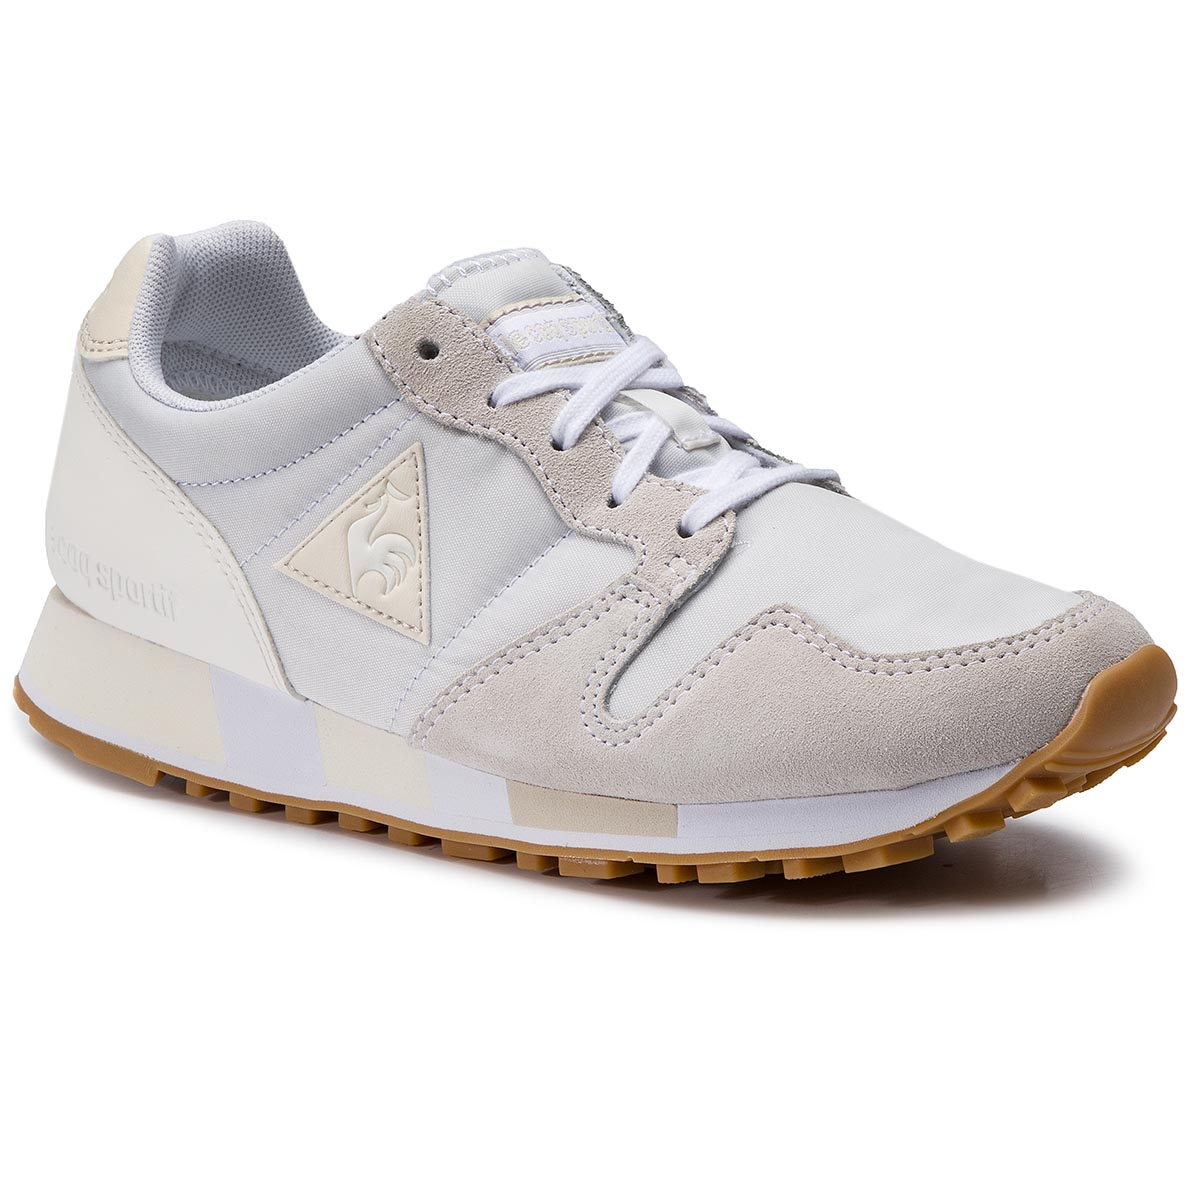 Sneakers LE COQ SPORTIF - Omega 1910564 Optical White/Turtle Dove